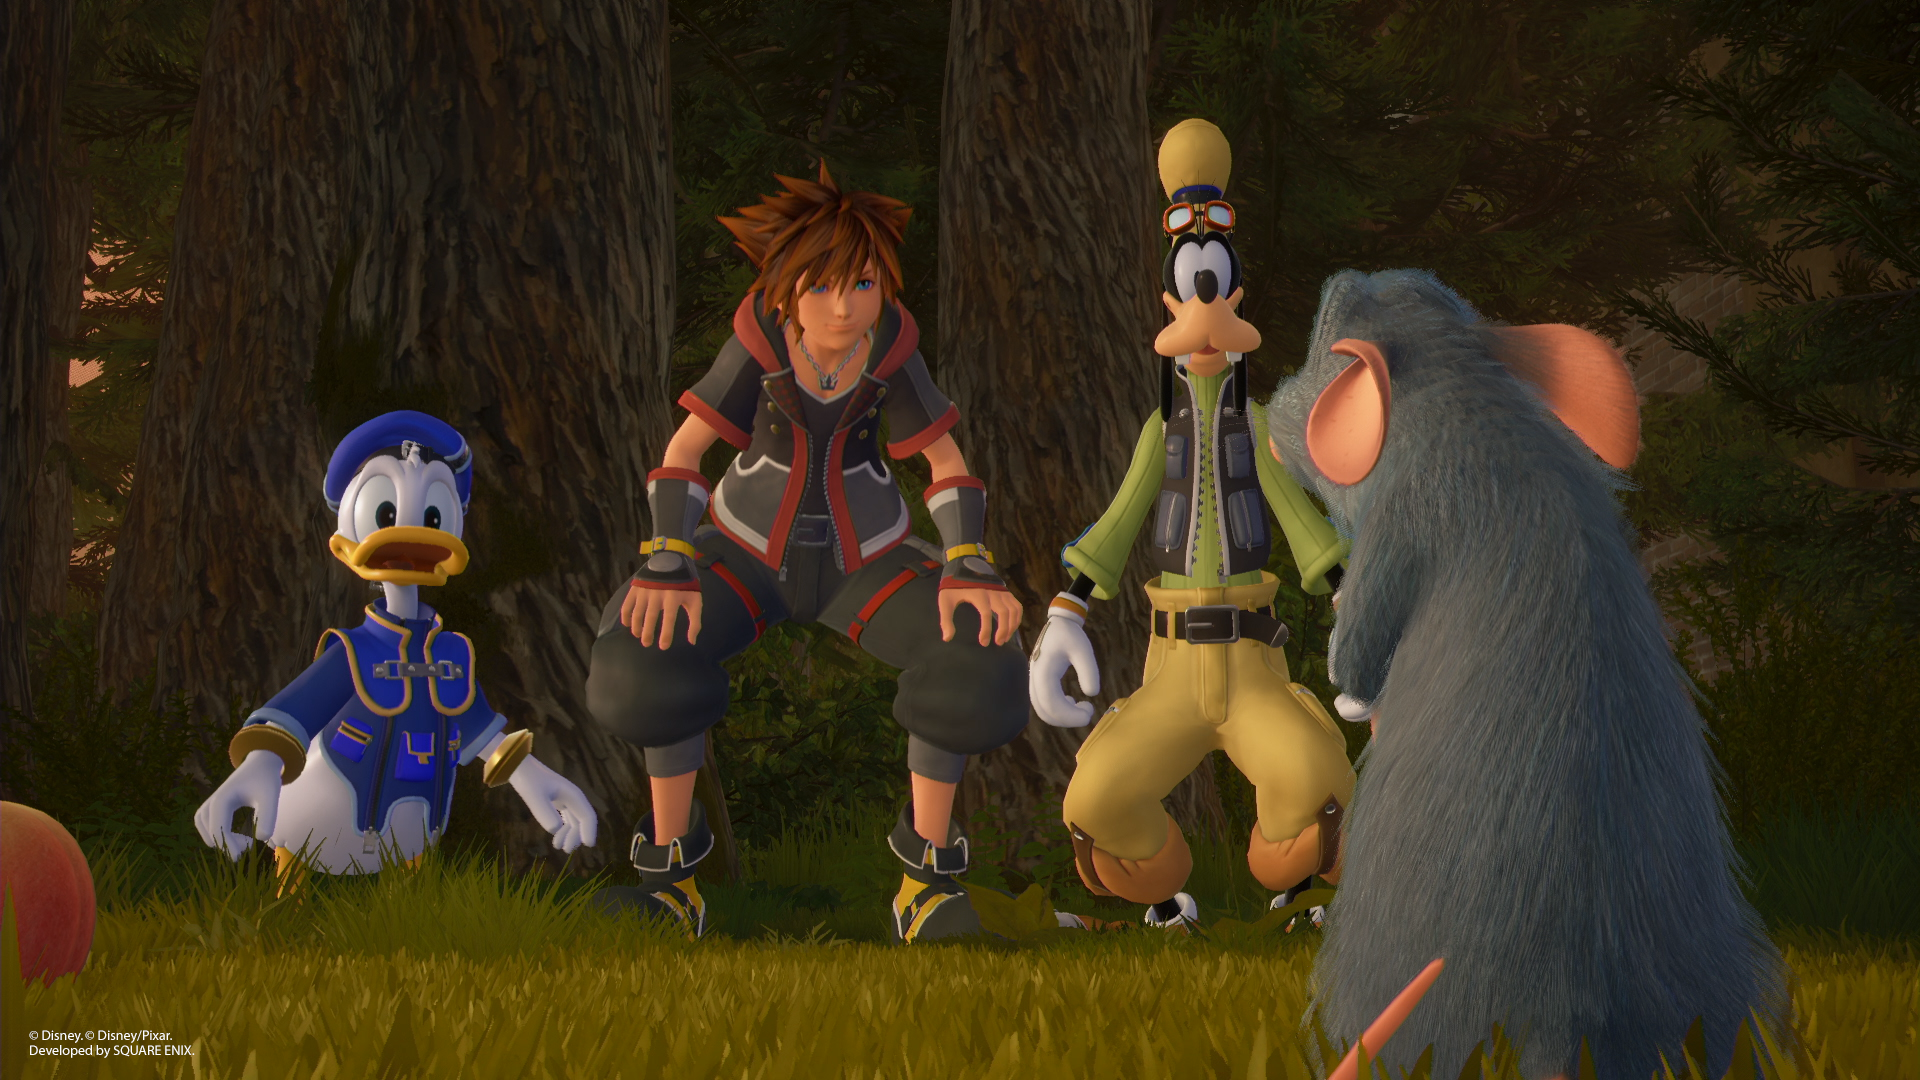 Kingdom Hearts III is the fastest selling title in franchise history Header Image